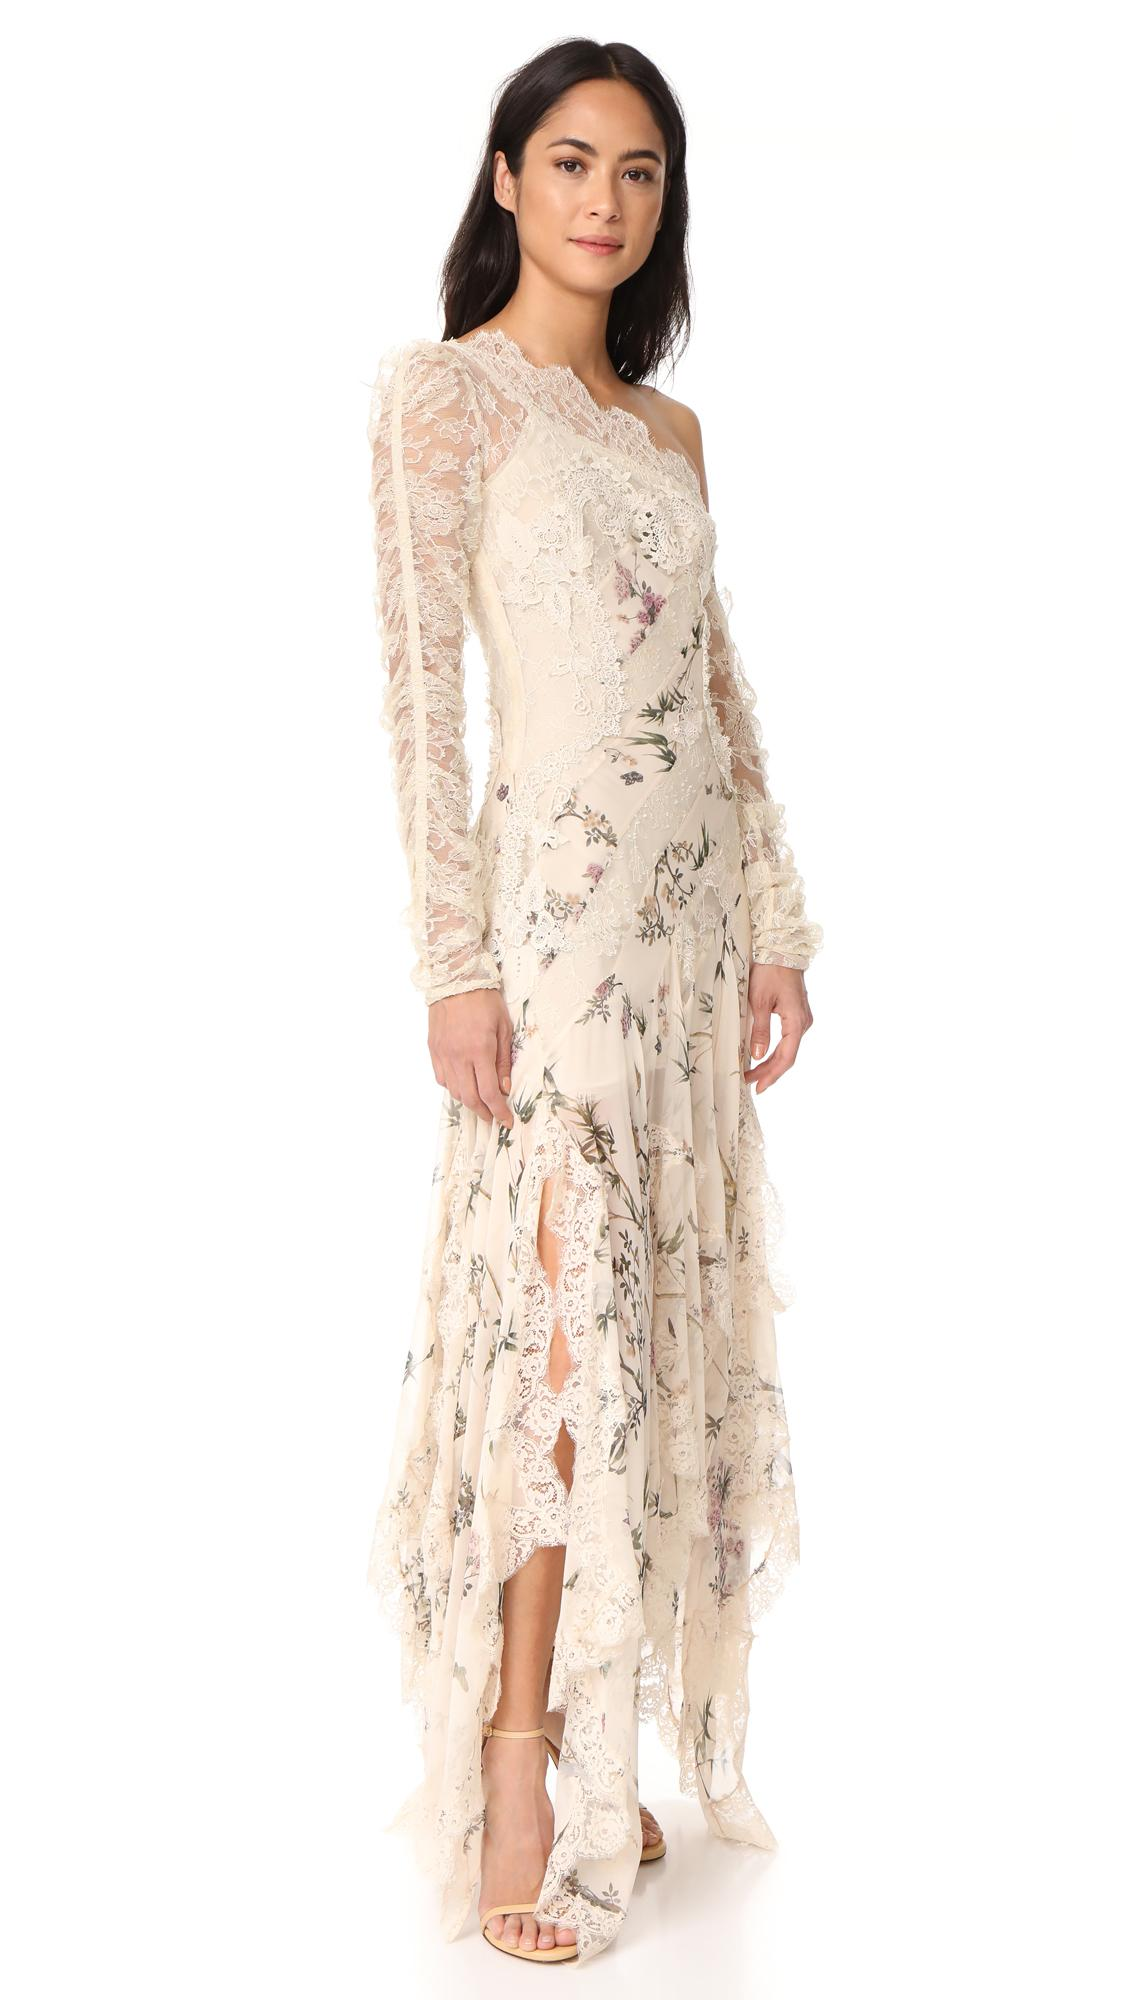 272bdbefd5 Lyst - Zimmermann Maples Temperance Long Dress in Natural